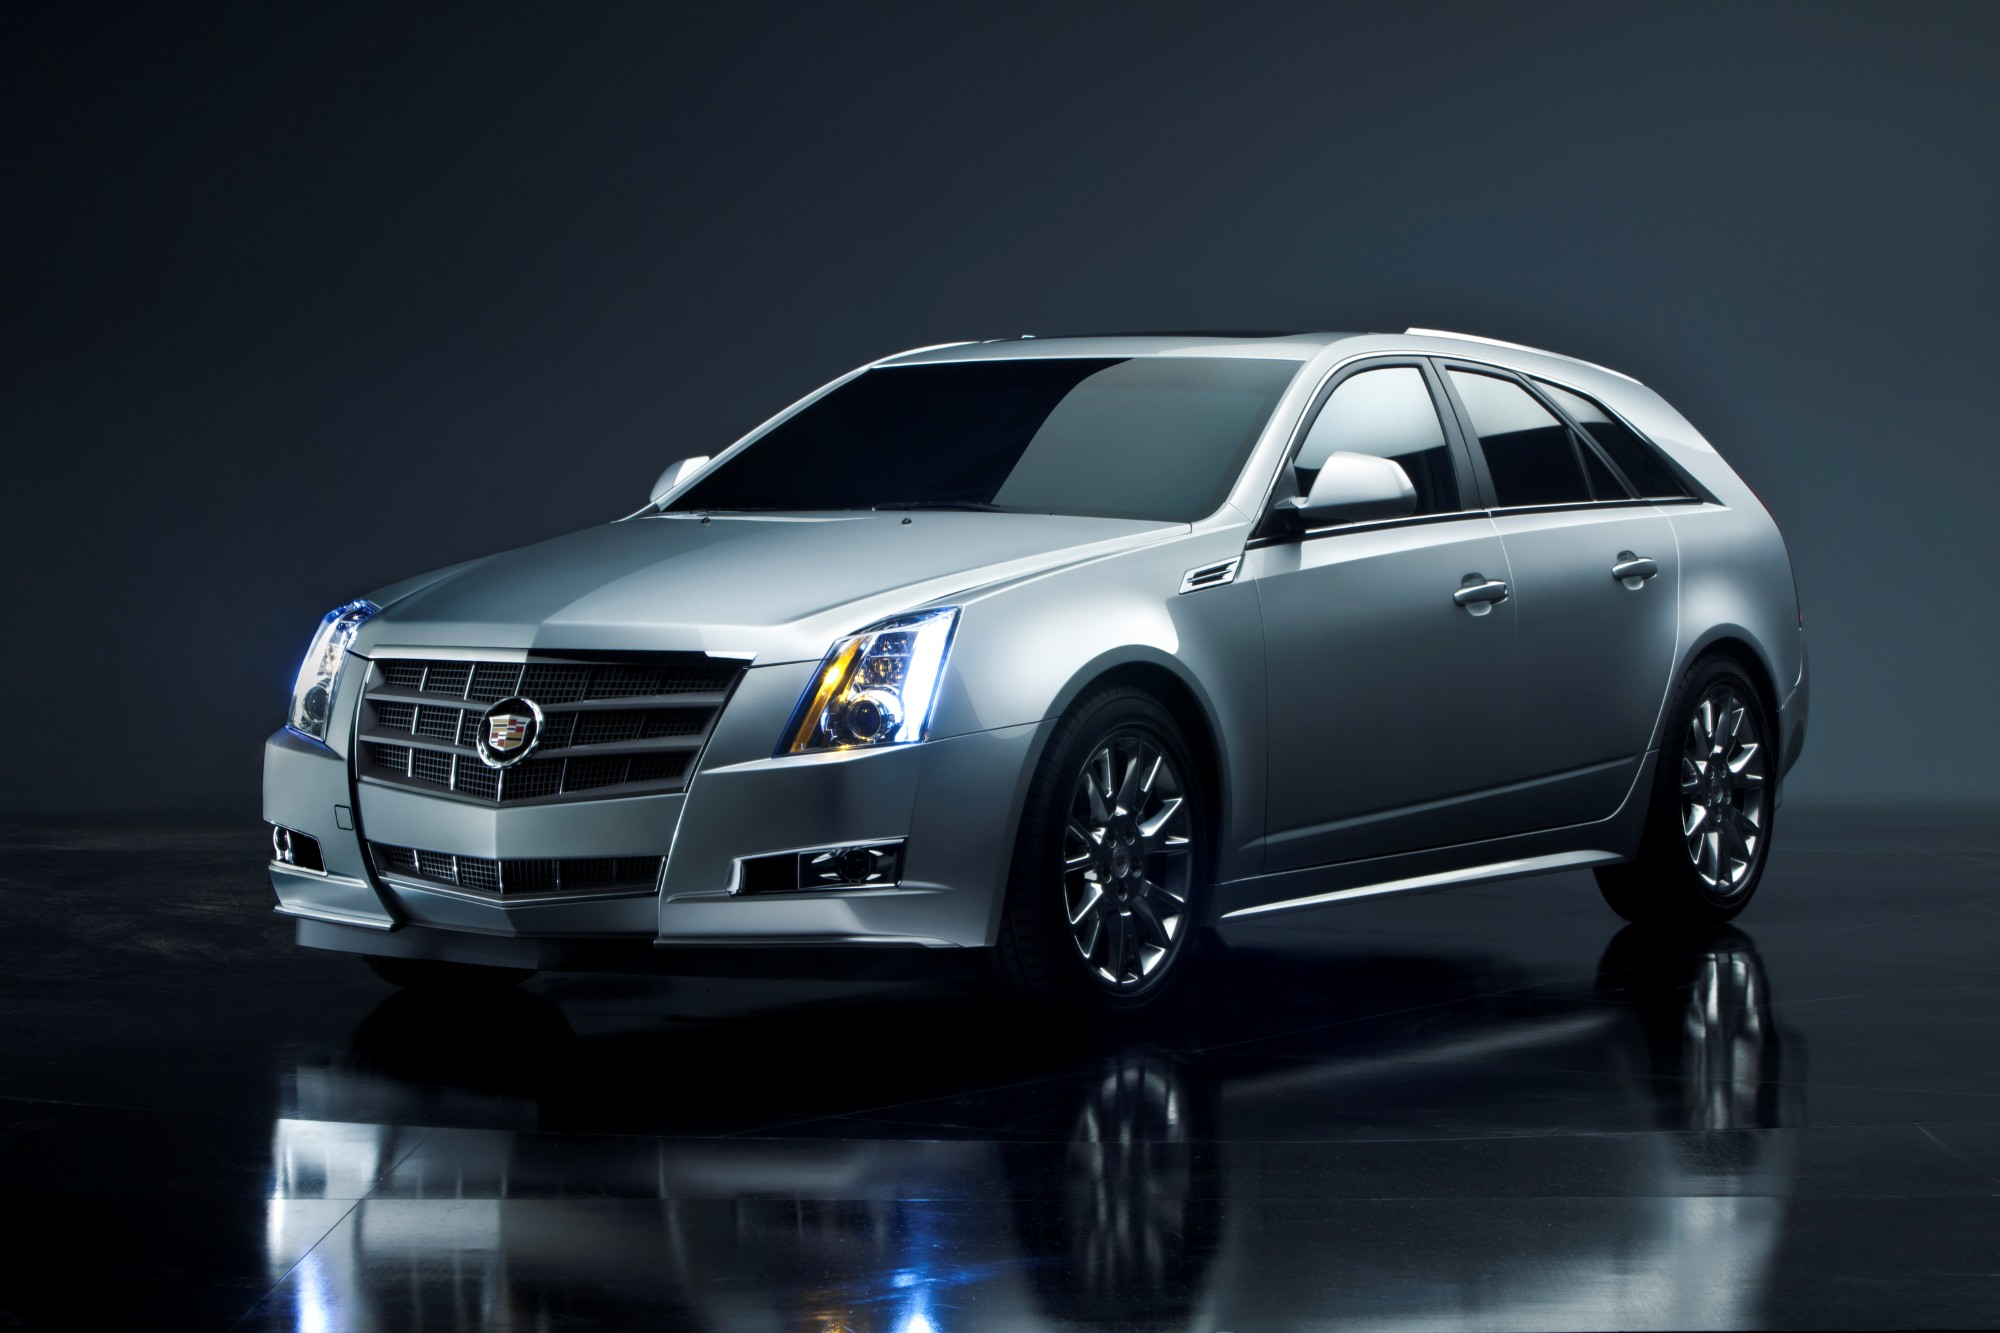 Mercedes Benz Of Memphis >> 2013 Cadillac CTS Review, Ratings, Specs, Prices, and Photos - The Car Connection